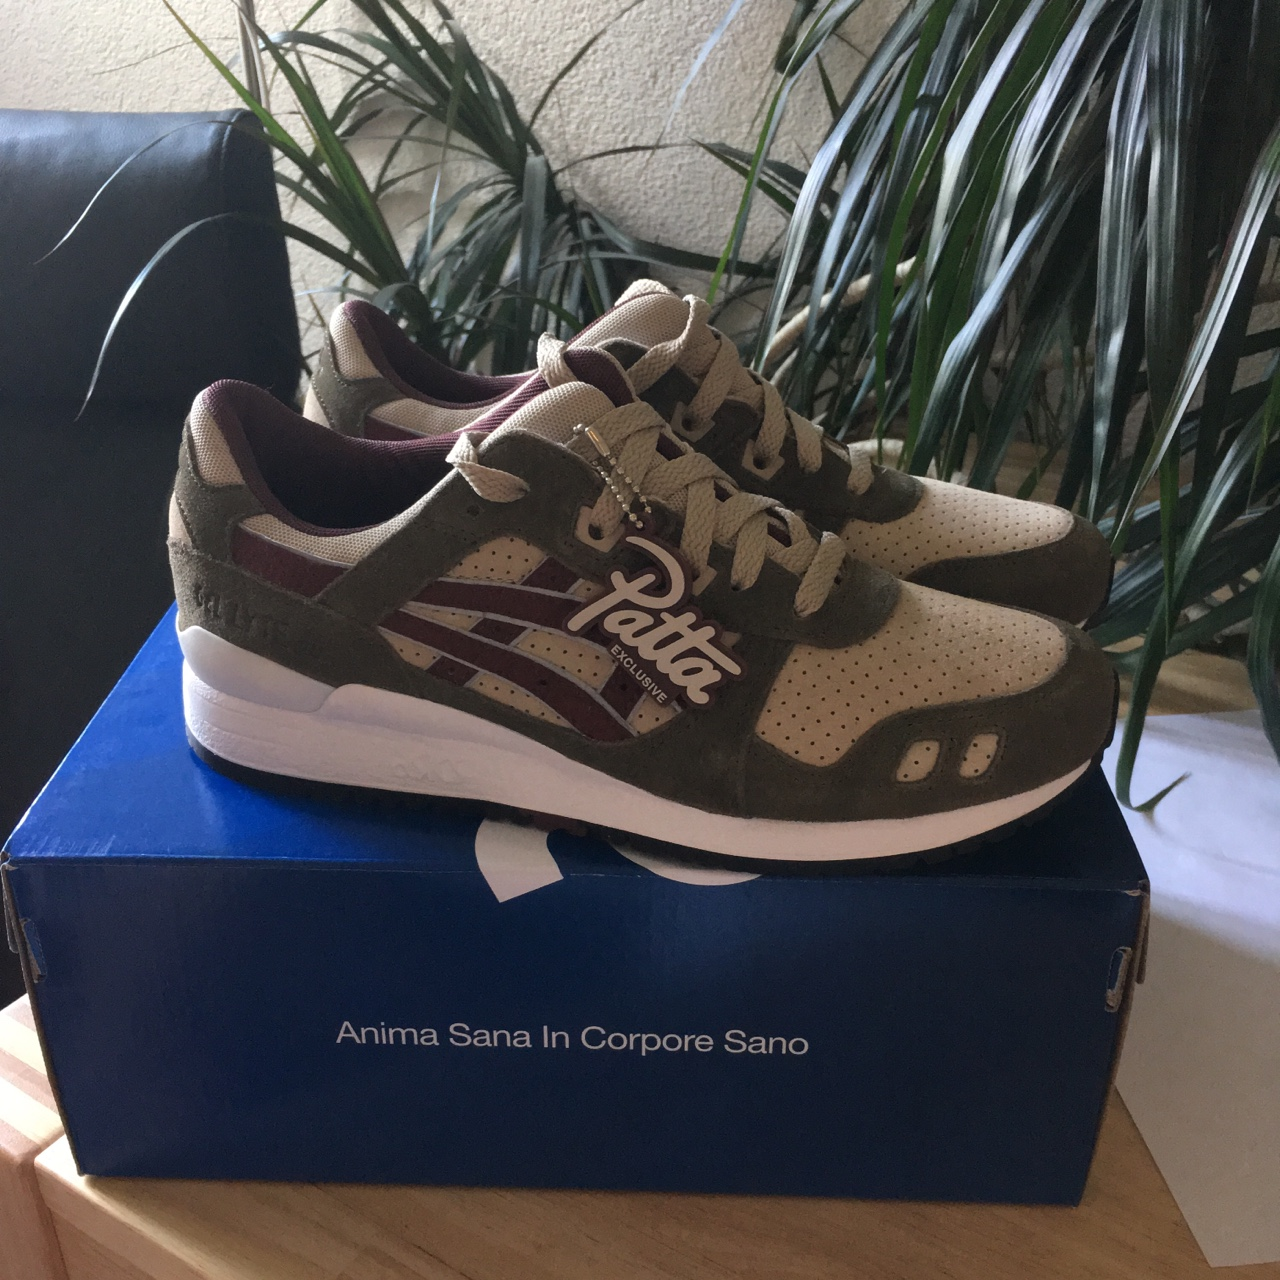 new style 2ae94 e03fc Asics Gel-Lyte III Patta exclusive Cond: 10/10... - Depop